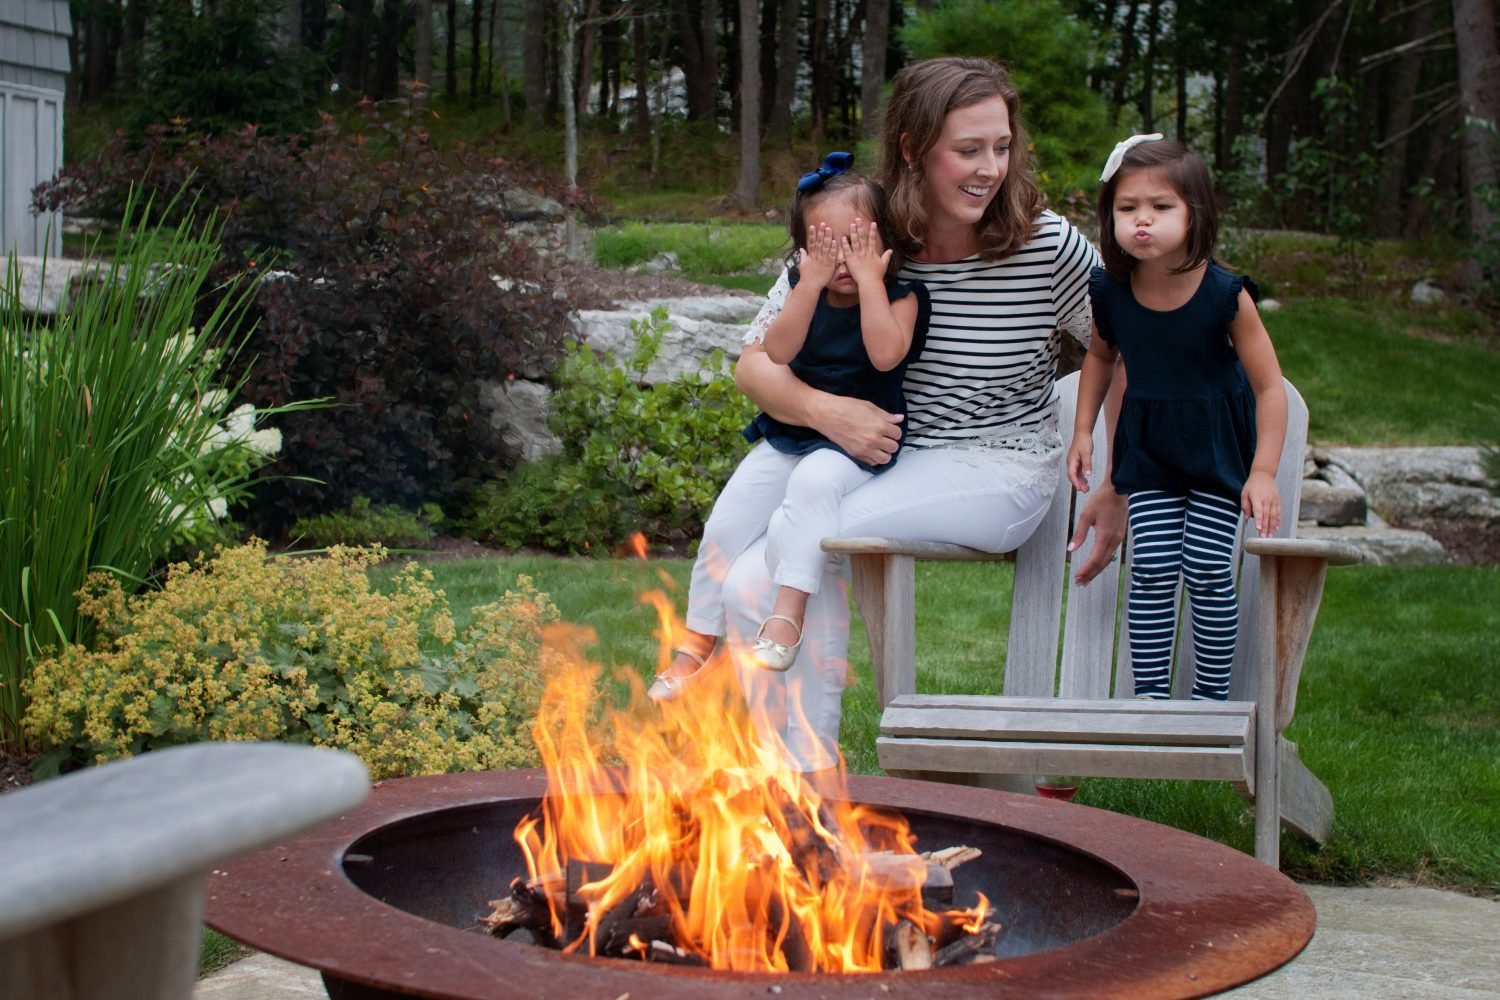 mother with two young daughters sitting by camp fire